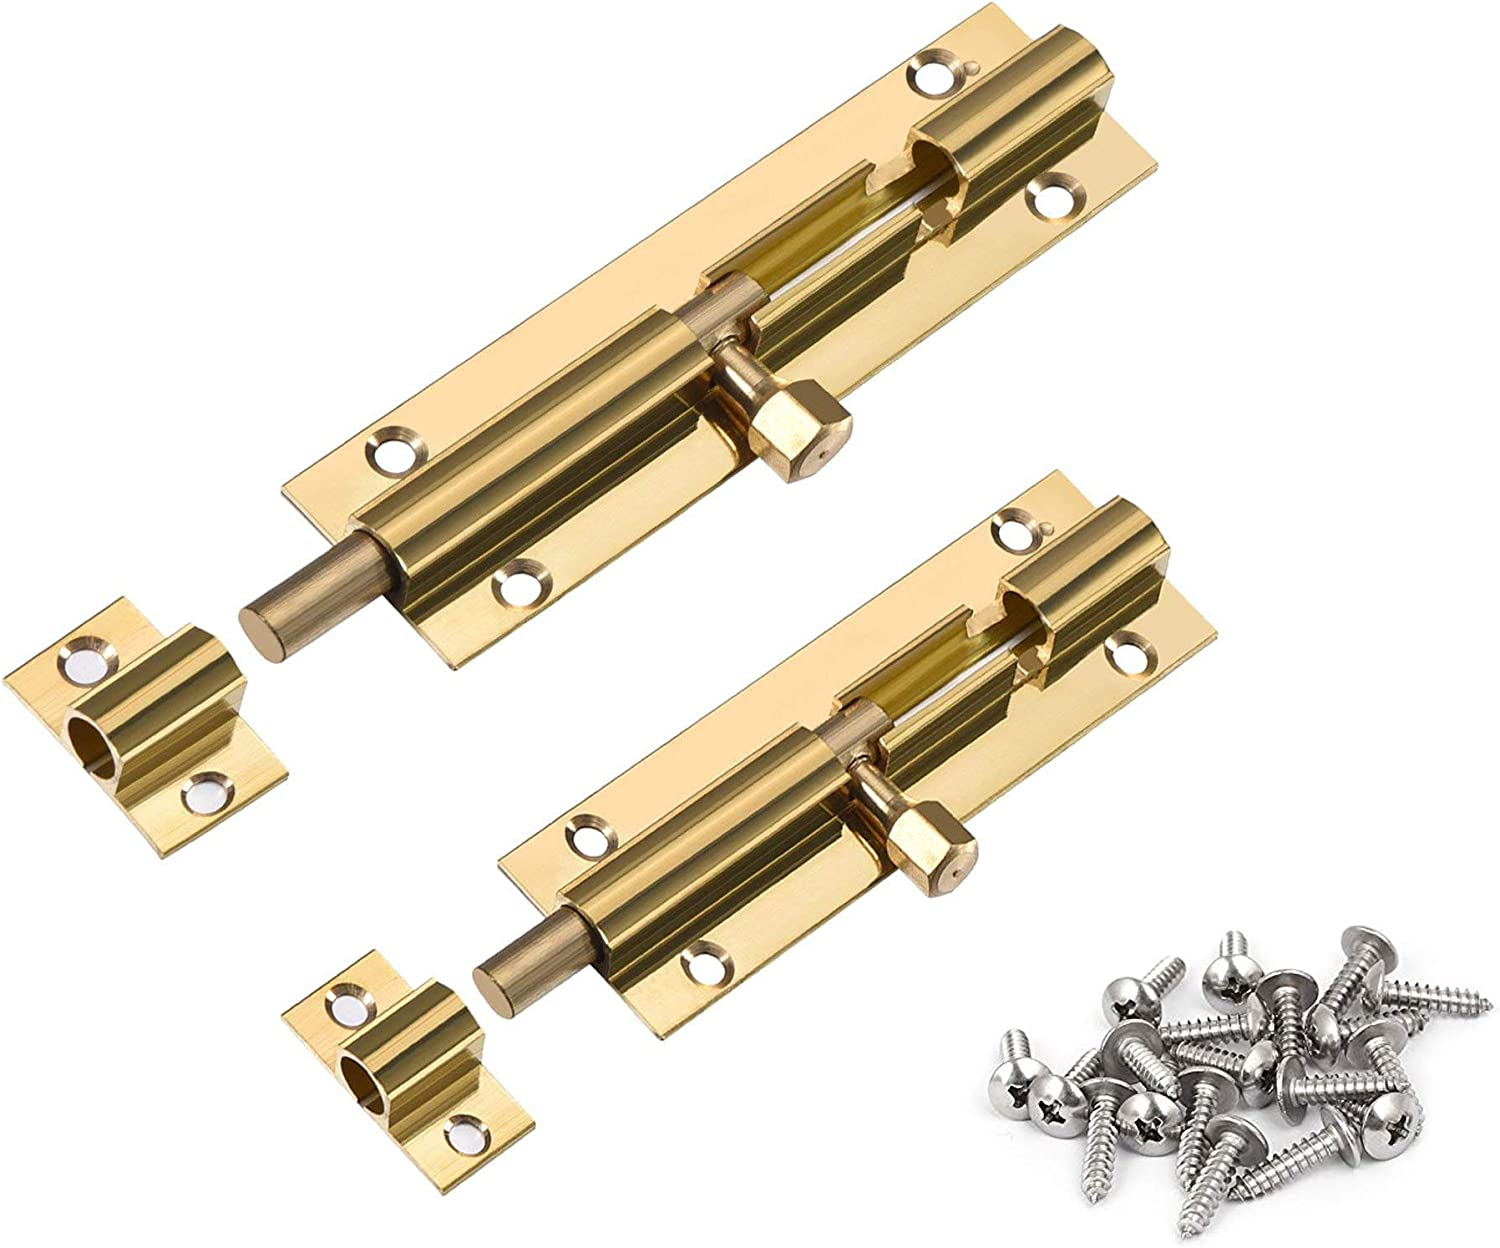 Karcy 4 inch /& 3 inch Thickened Brass Barrel Slide Lock Door Bolt with Mounting Screws